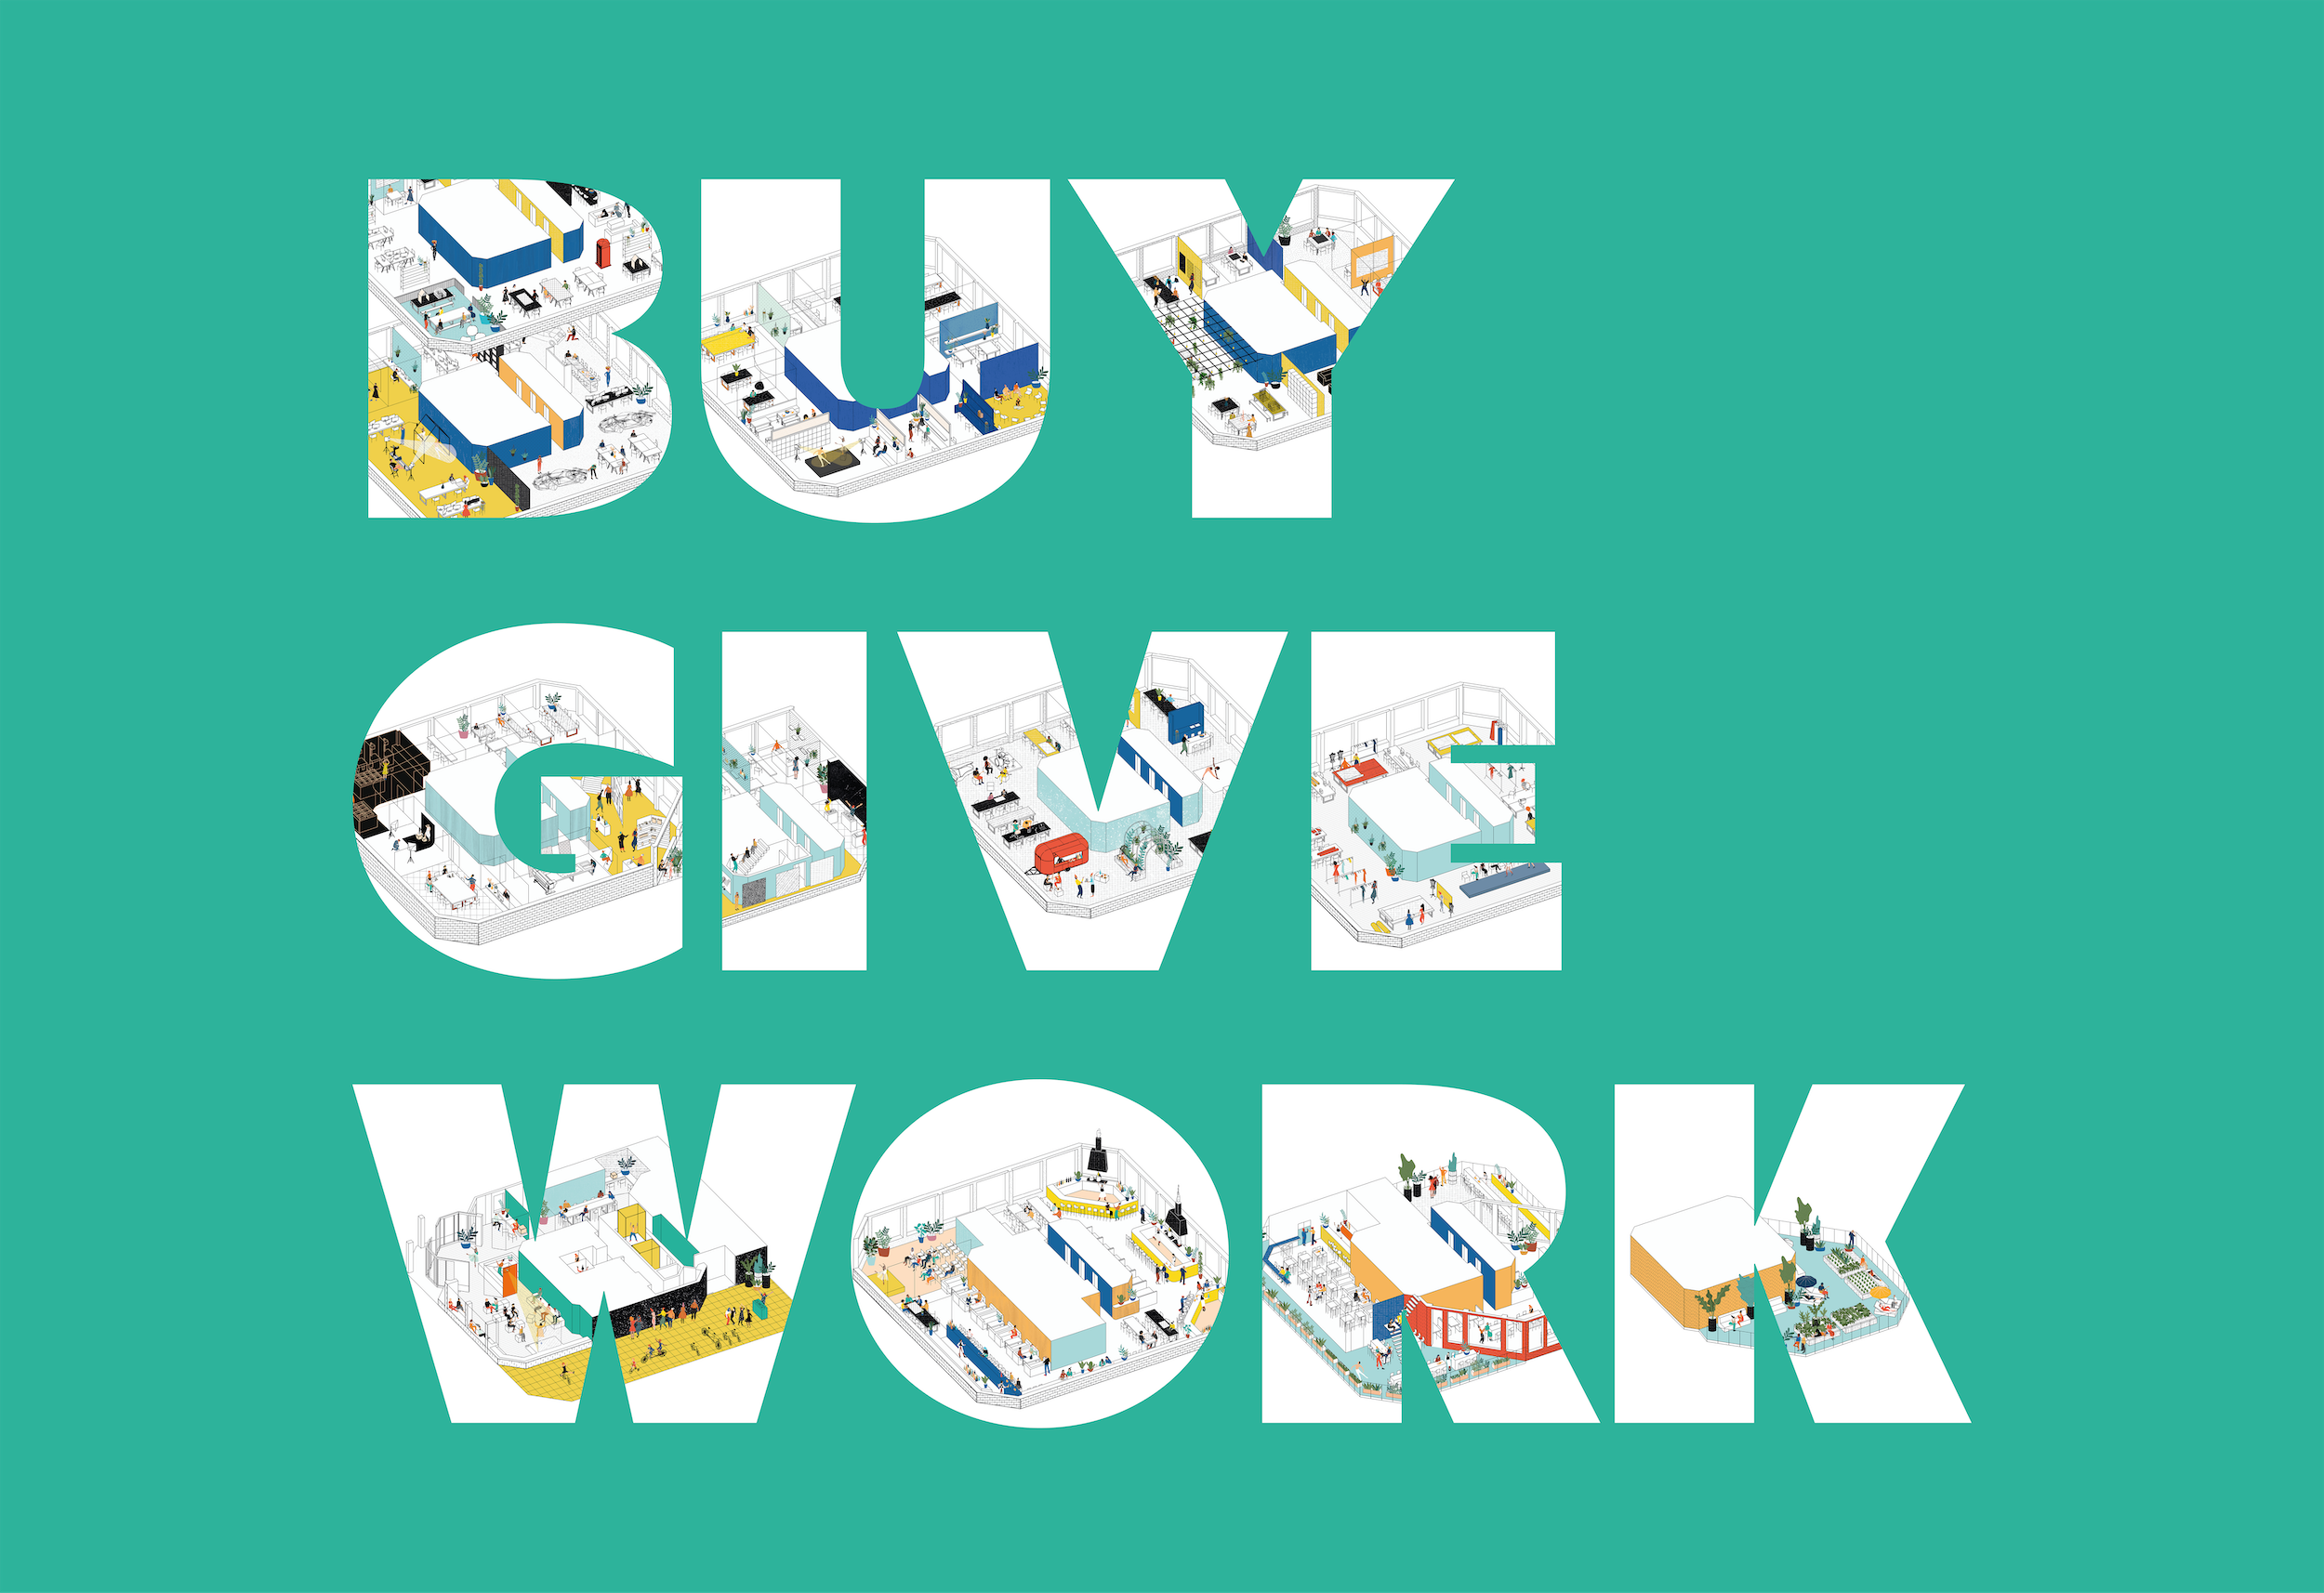 Buy Give Work_Lobby Wall-01.png